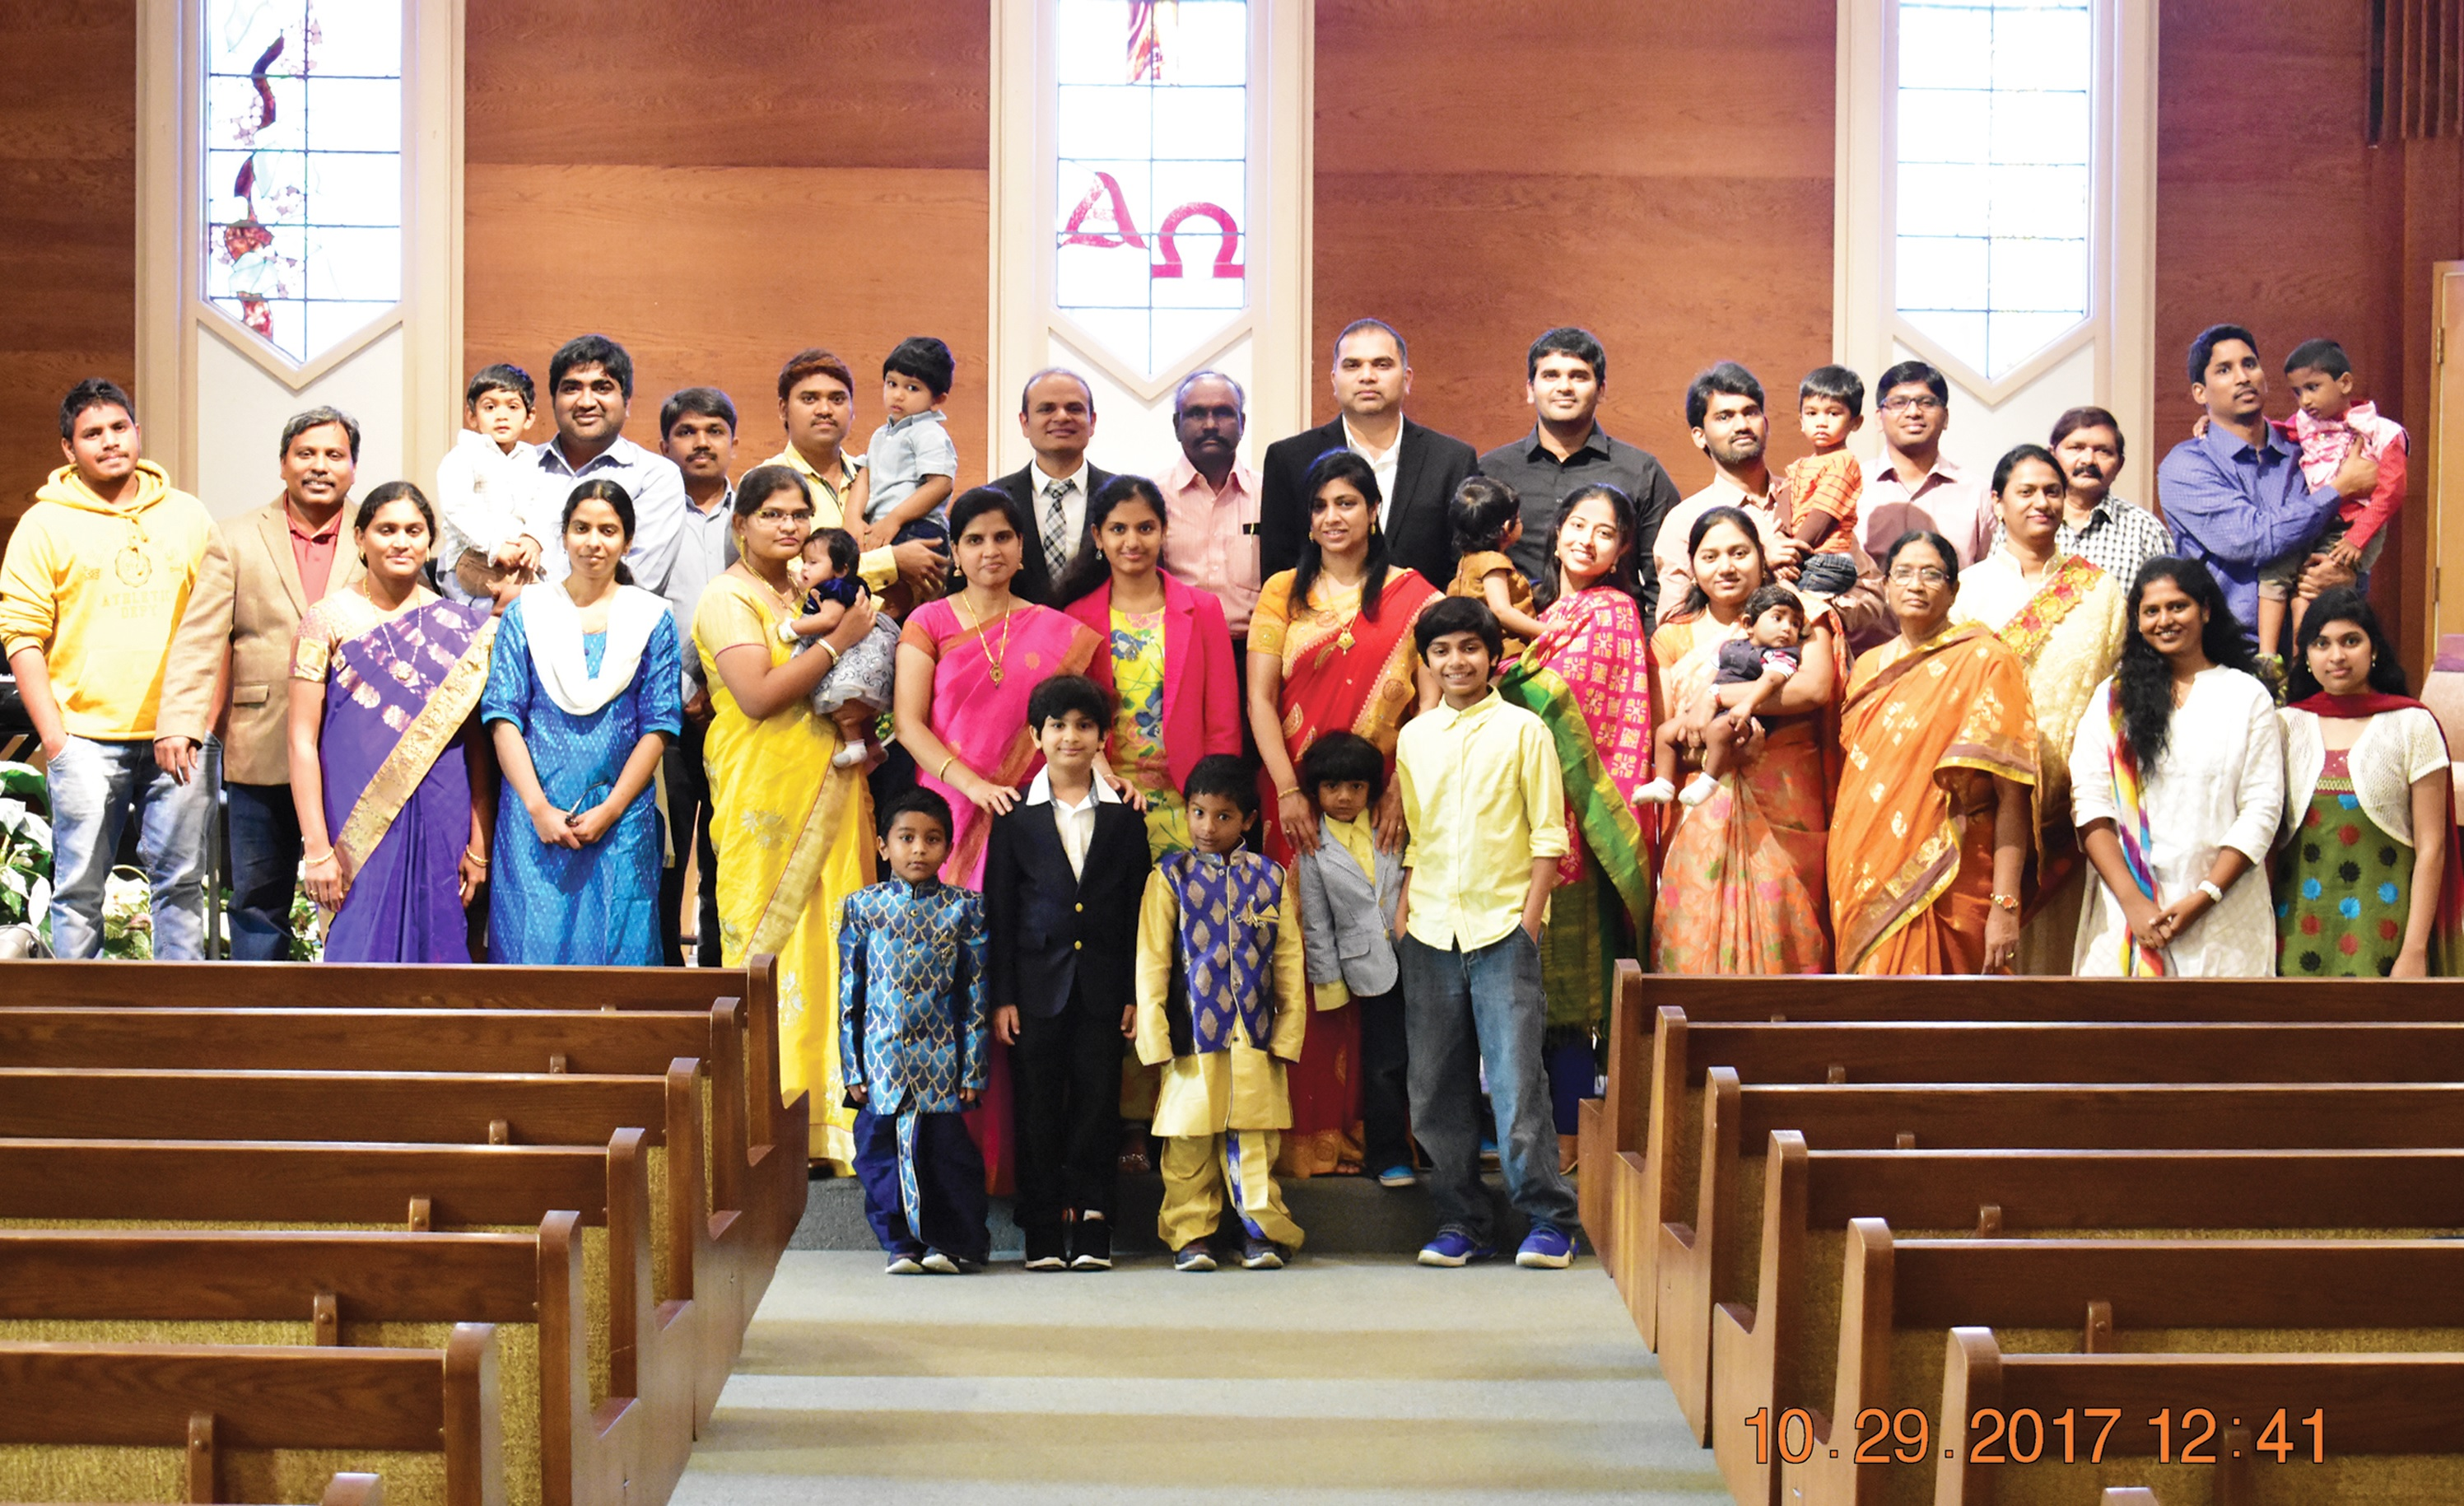 church-image-2017-for-web-new